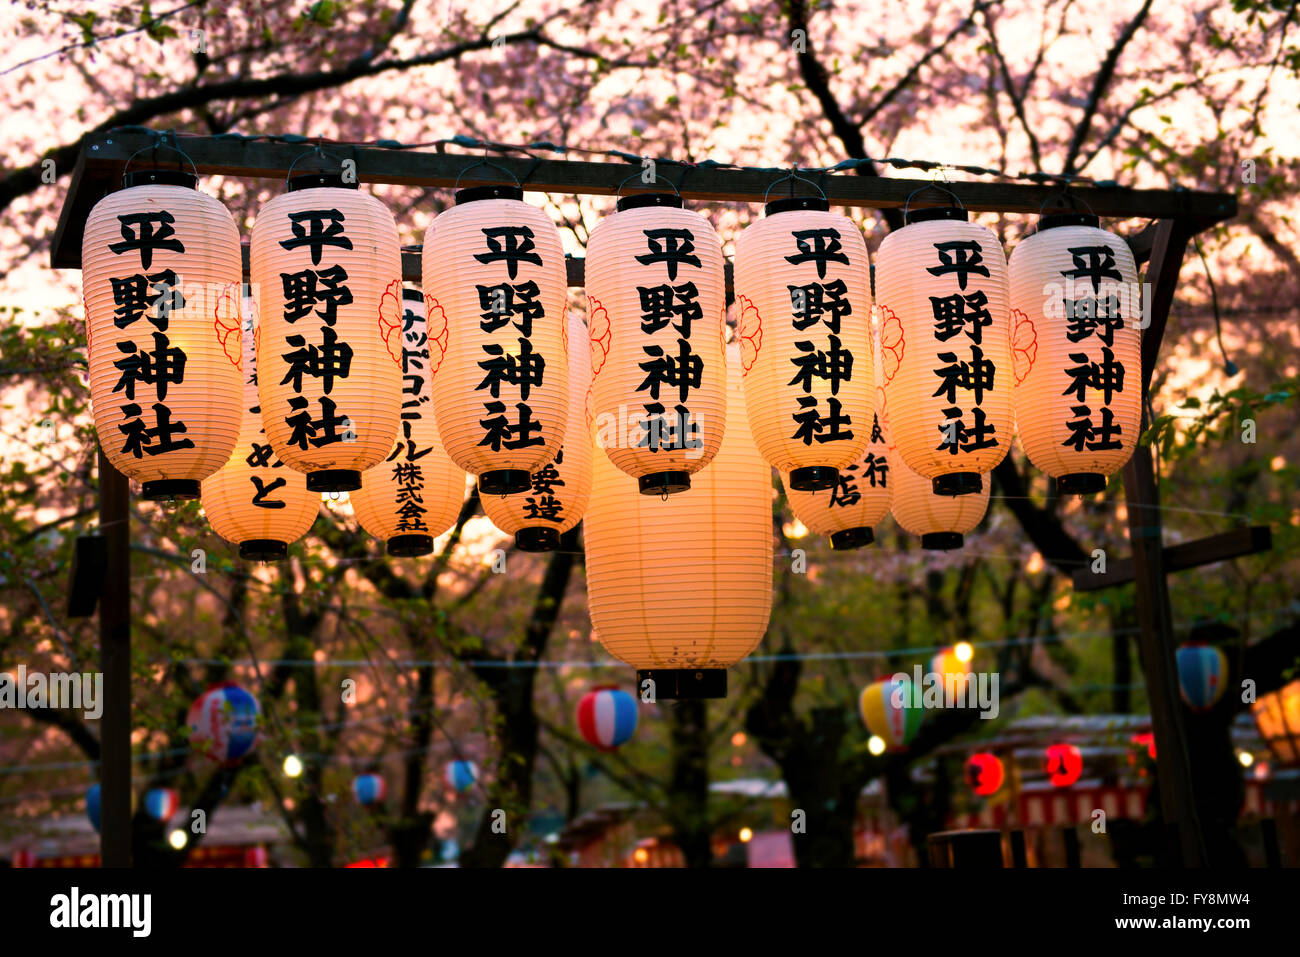 Japan, Kyoto, row of lighted Japanese lanterns in a park atblossoming season - Stock Image